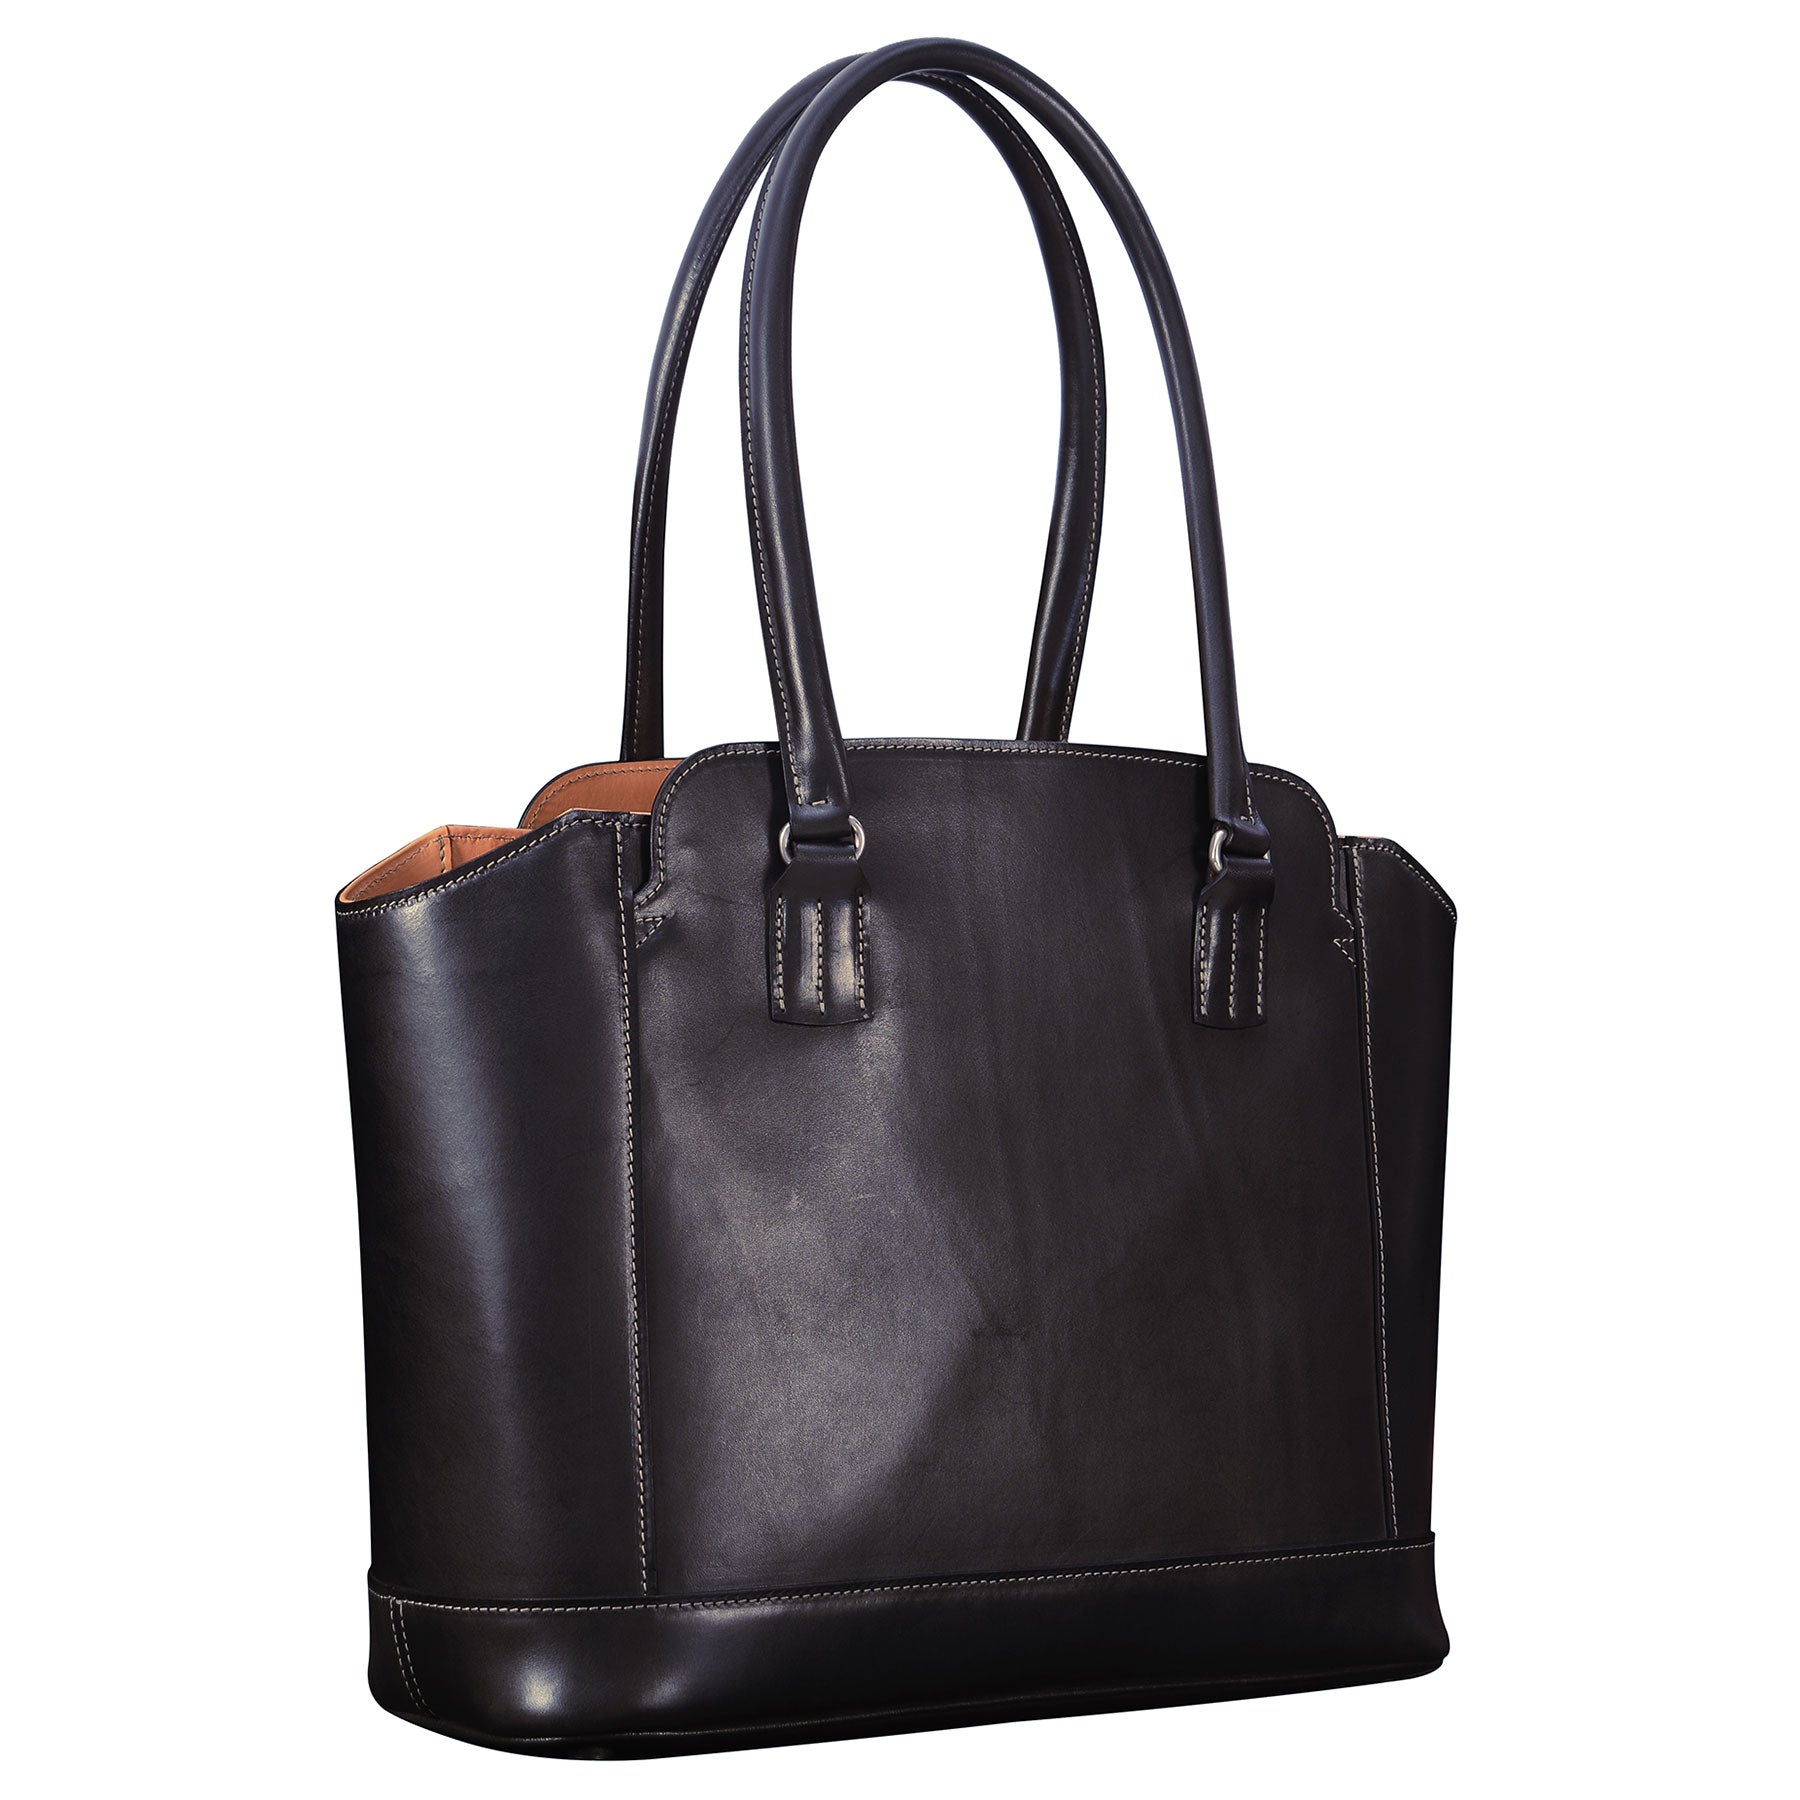 Glaser Designs City Tote with Long Handles in Hand burnished Black vegetable tanned leather. Solid brass hardware. Made to measure, custom sizes.